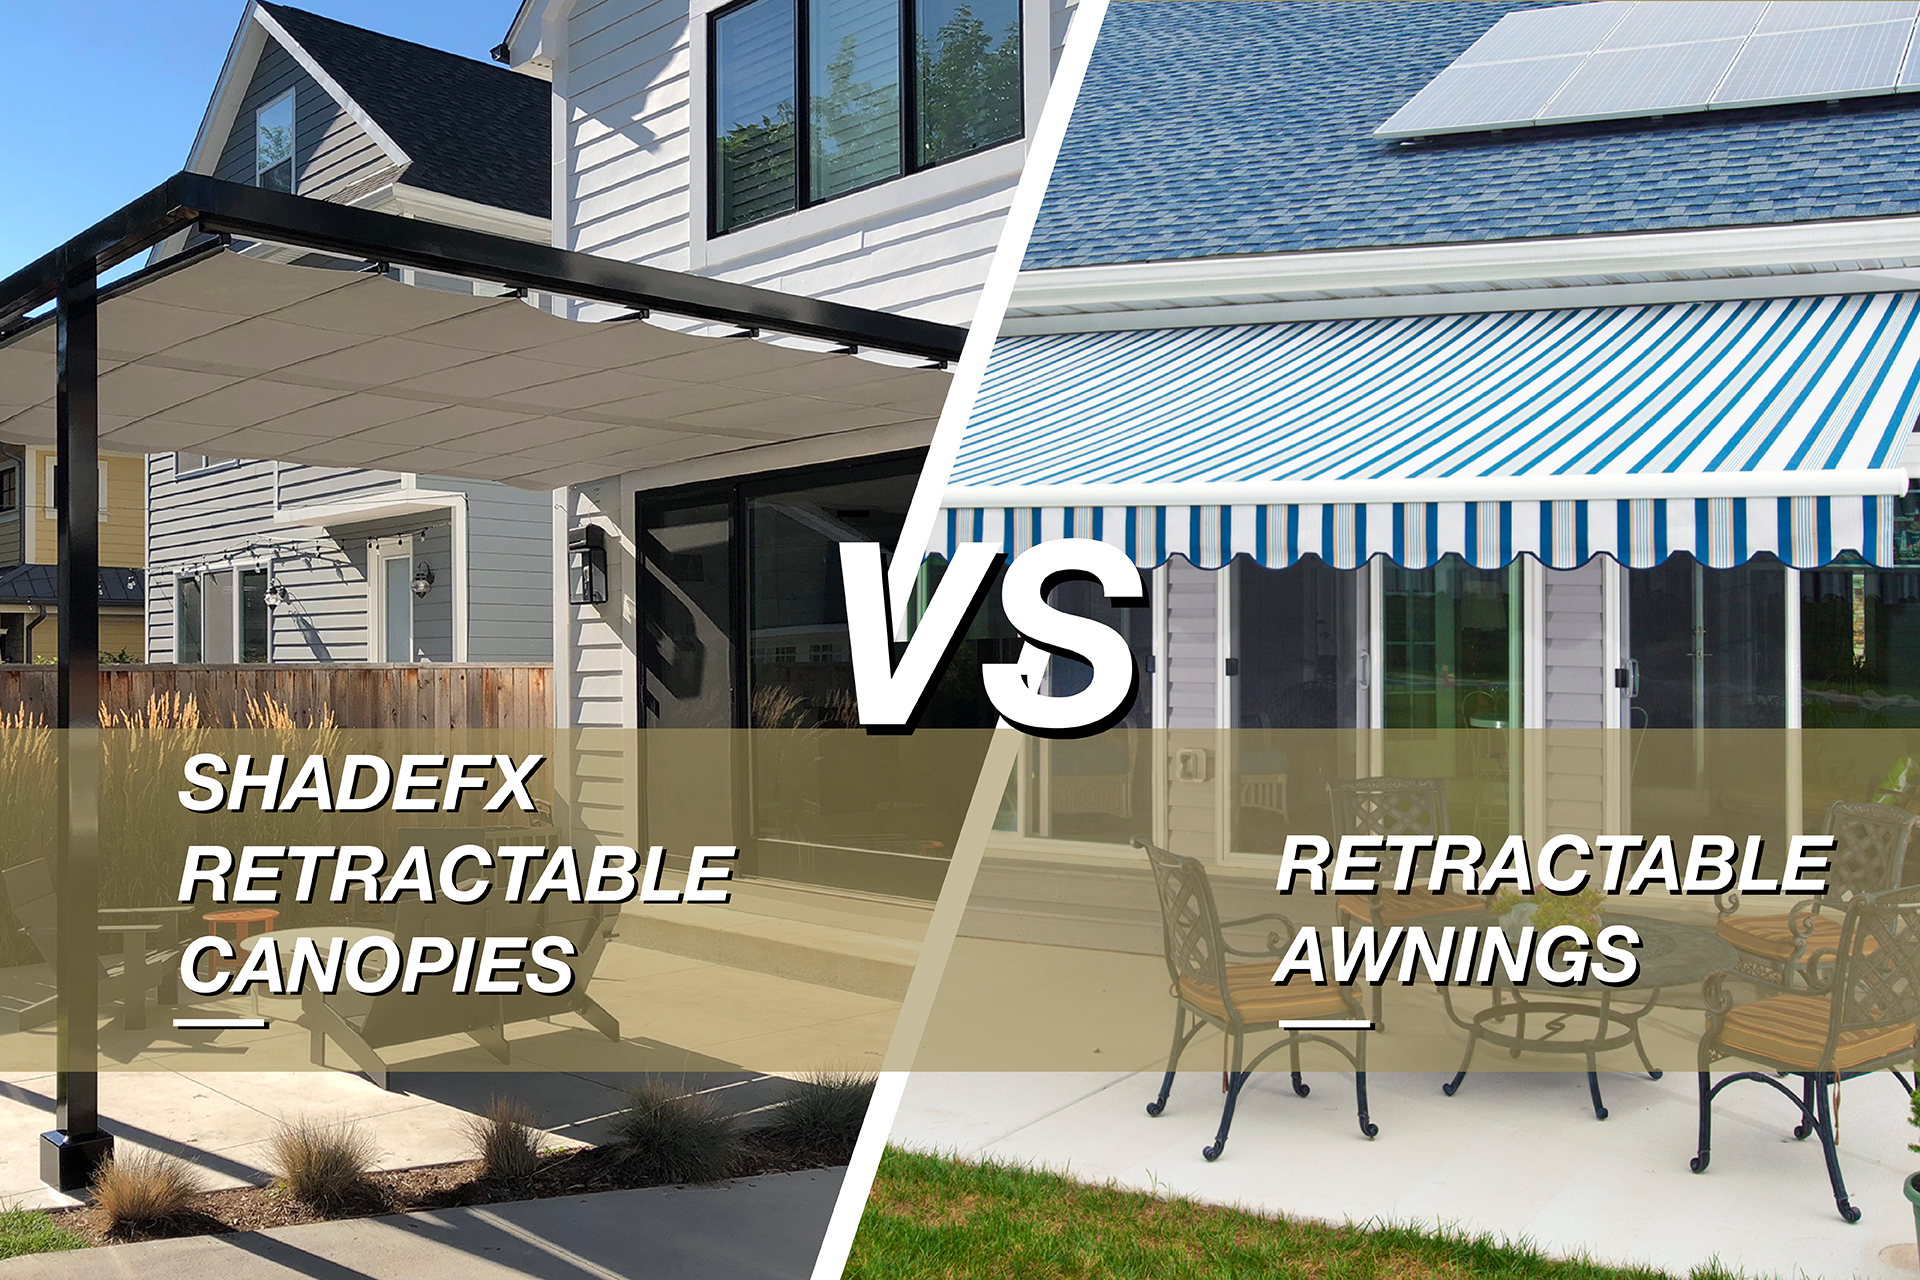 shadefx vs retractable awnings